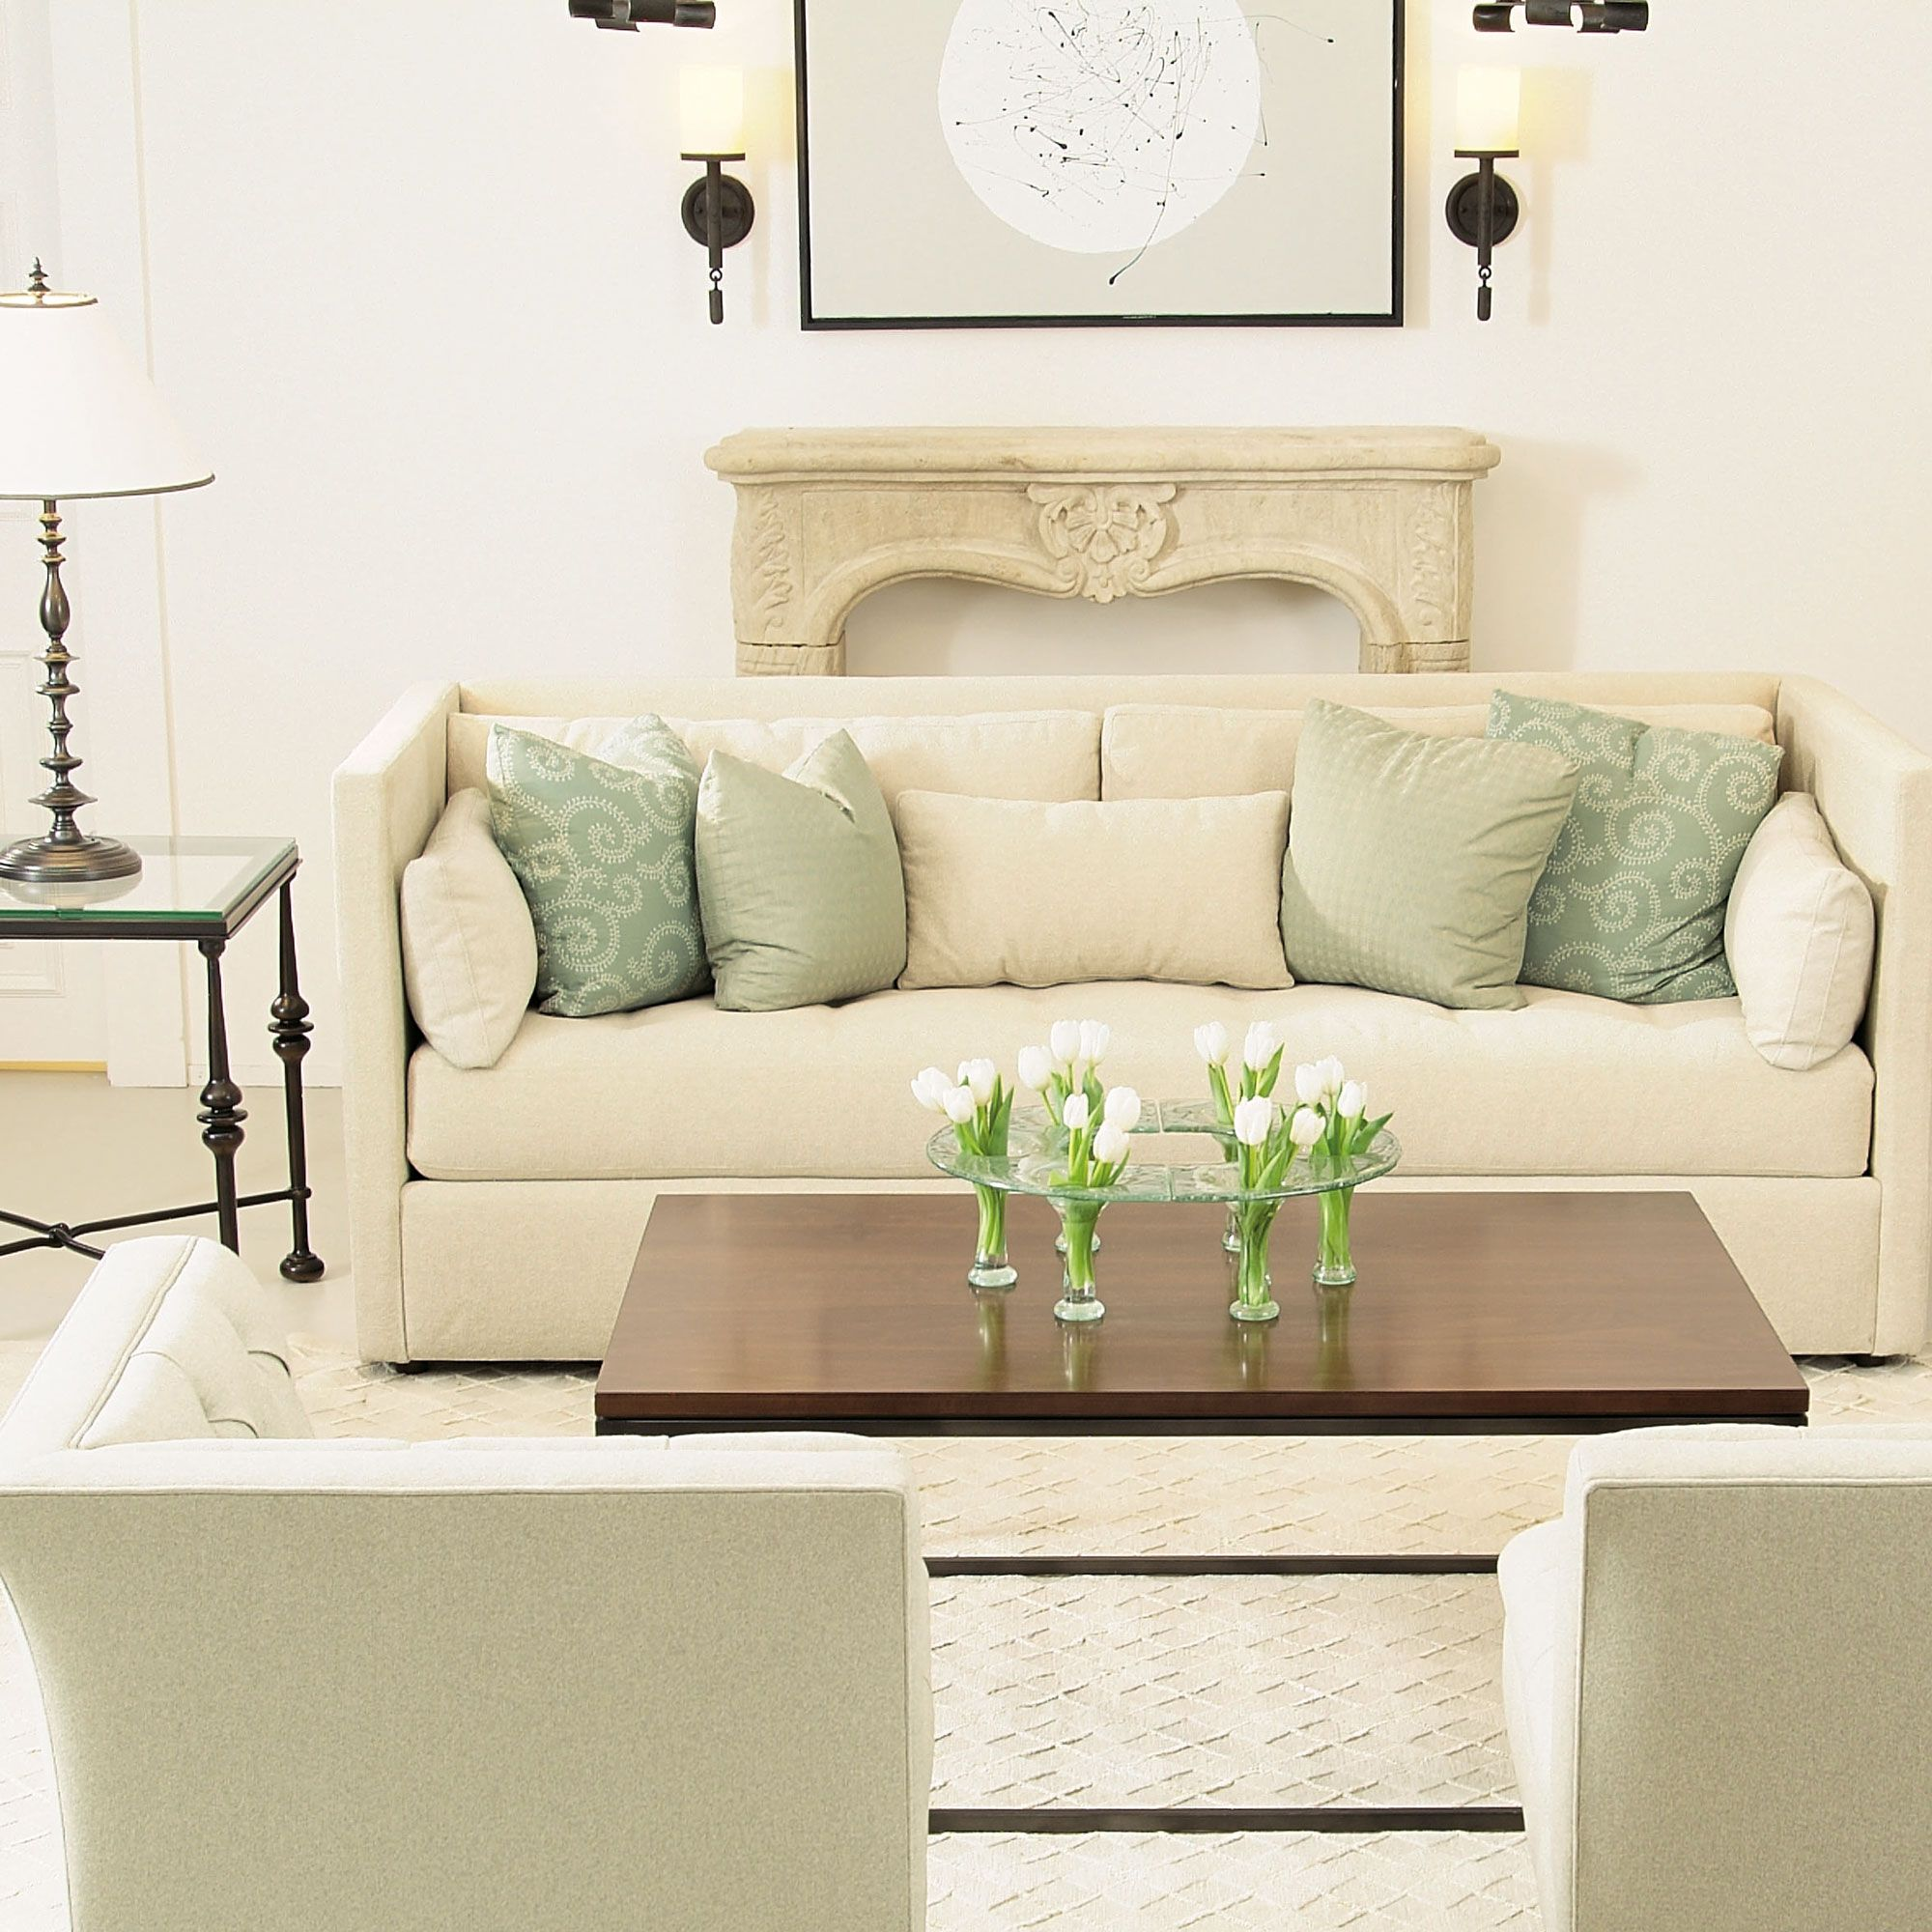 Bernhardt | Airy living room - cream sofa with aqua pillows - pale ...